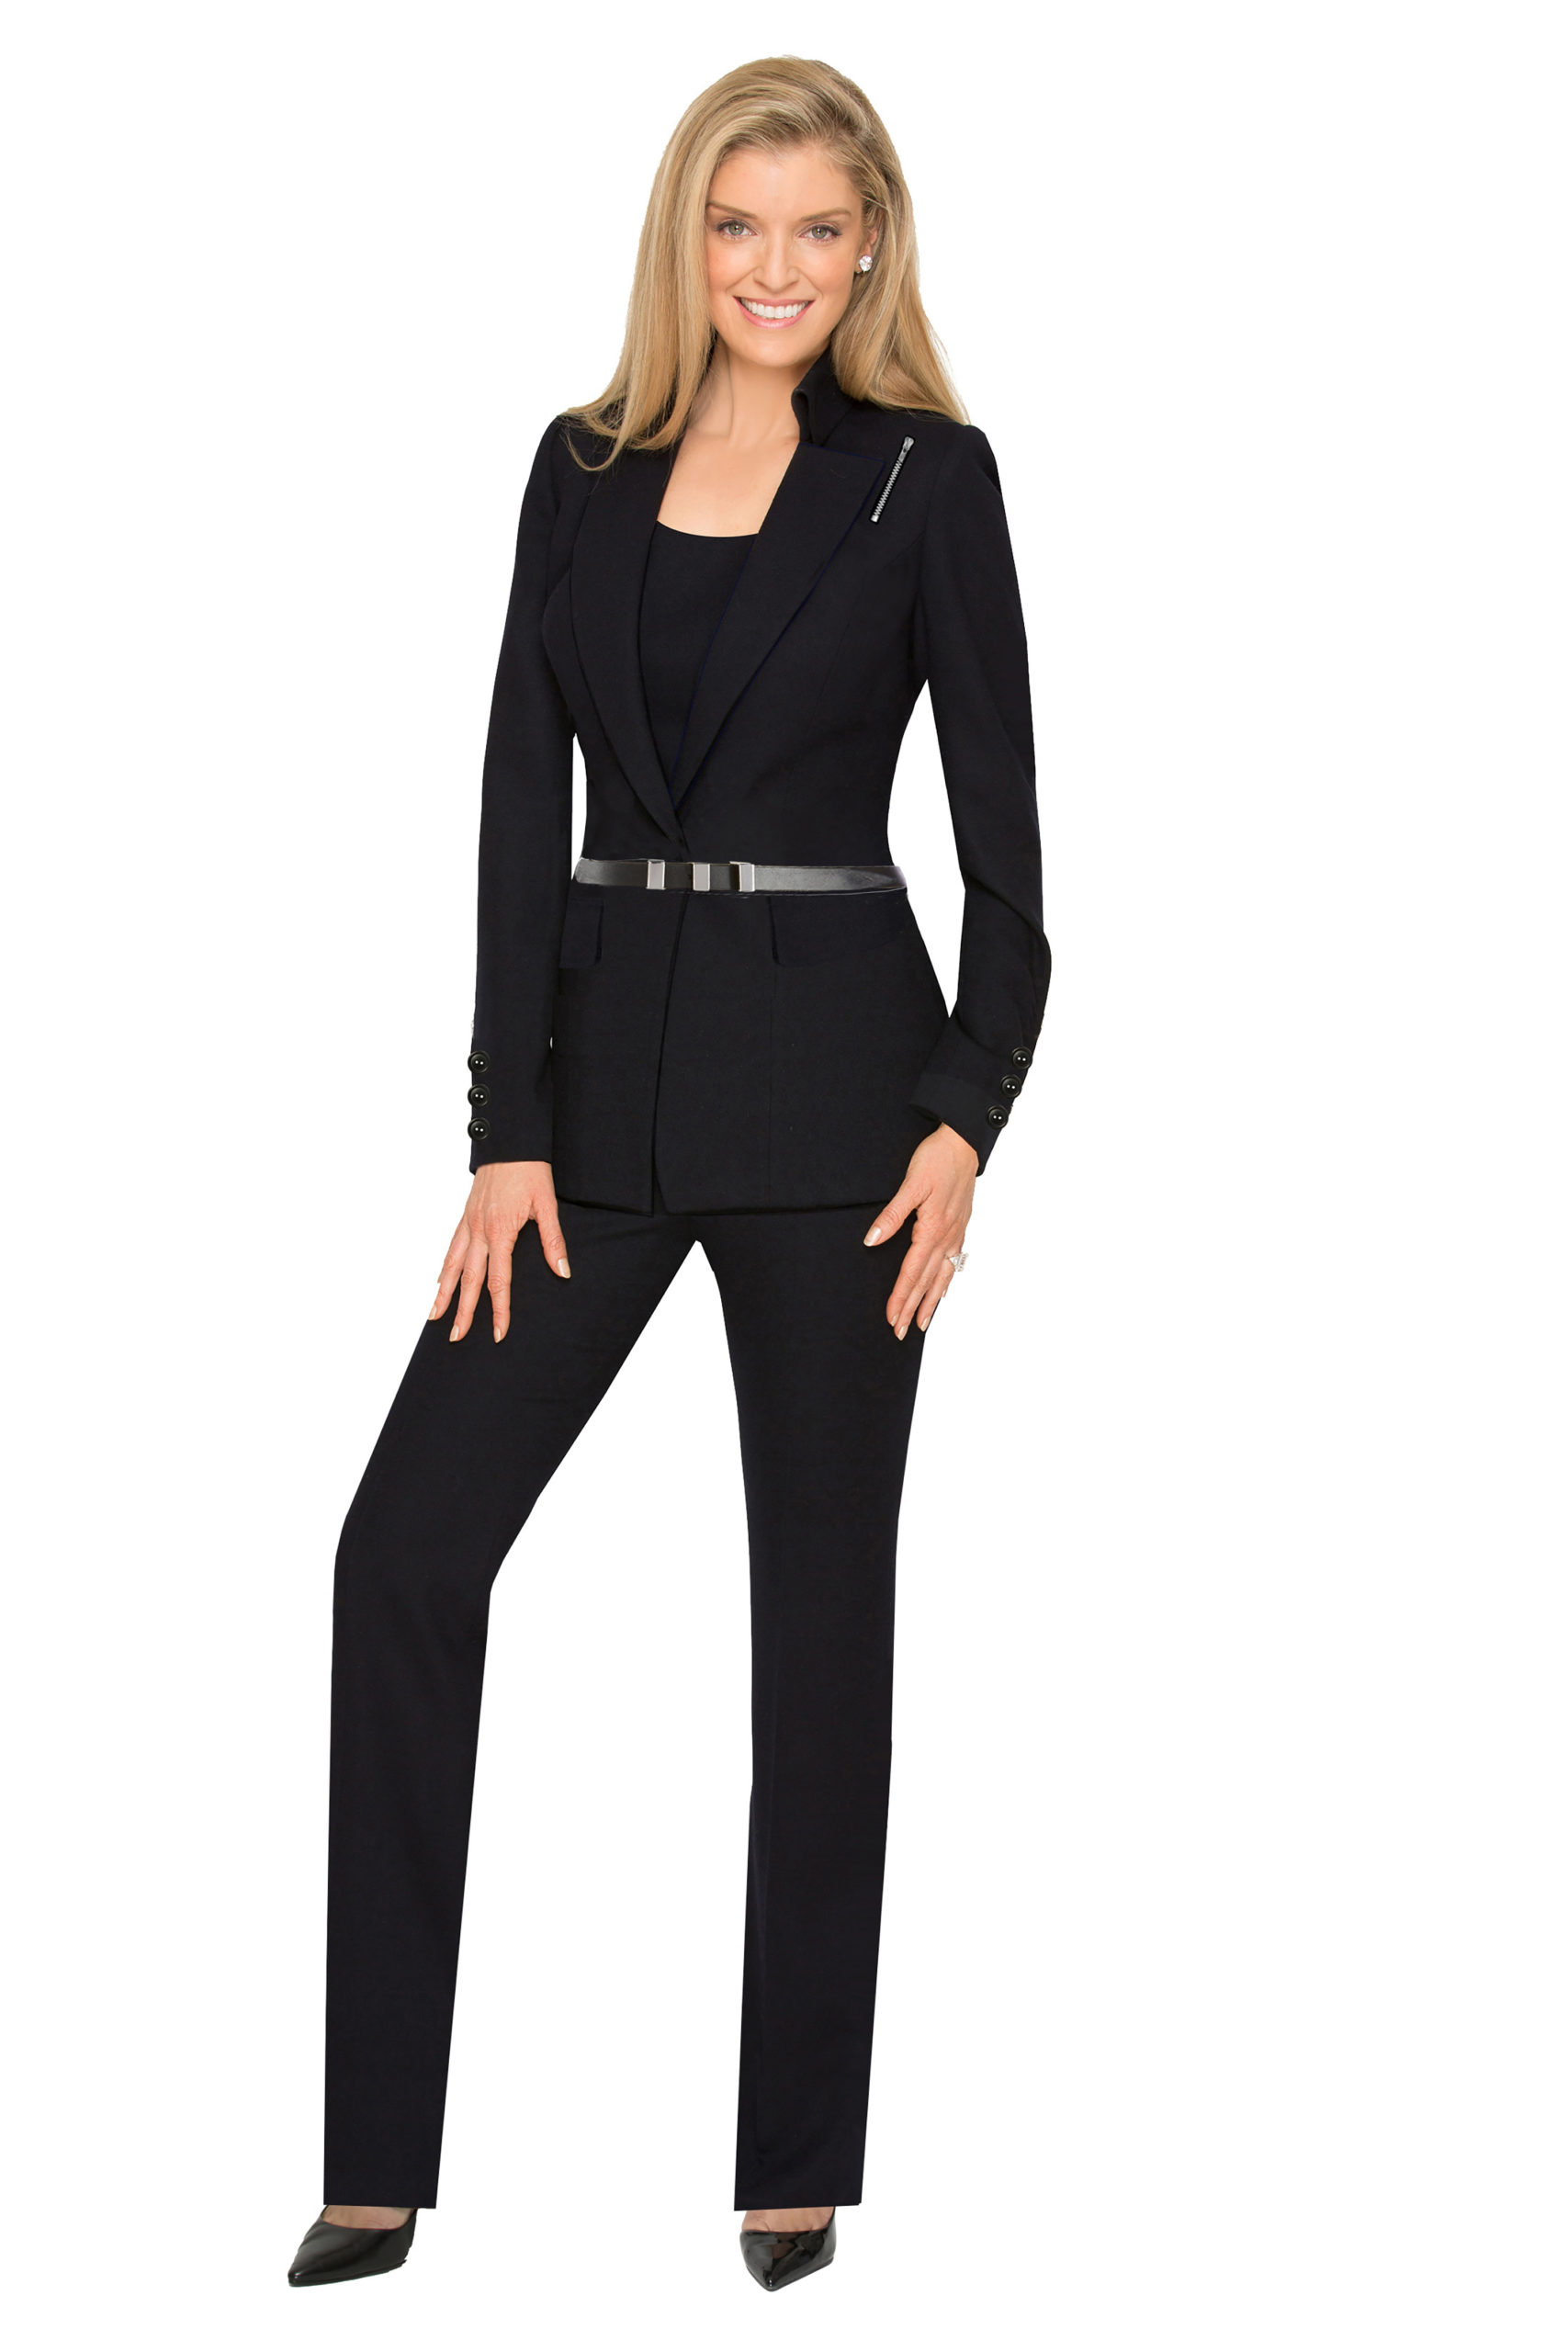 Susanna Beverly Hills Luxury Clothing, Women's Business Attire